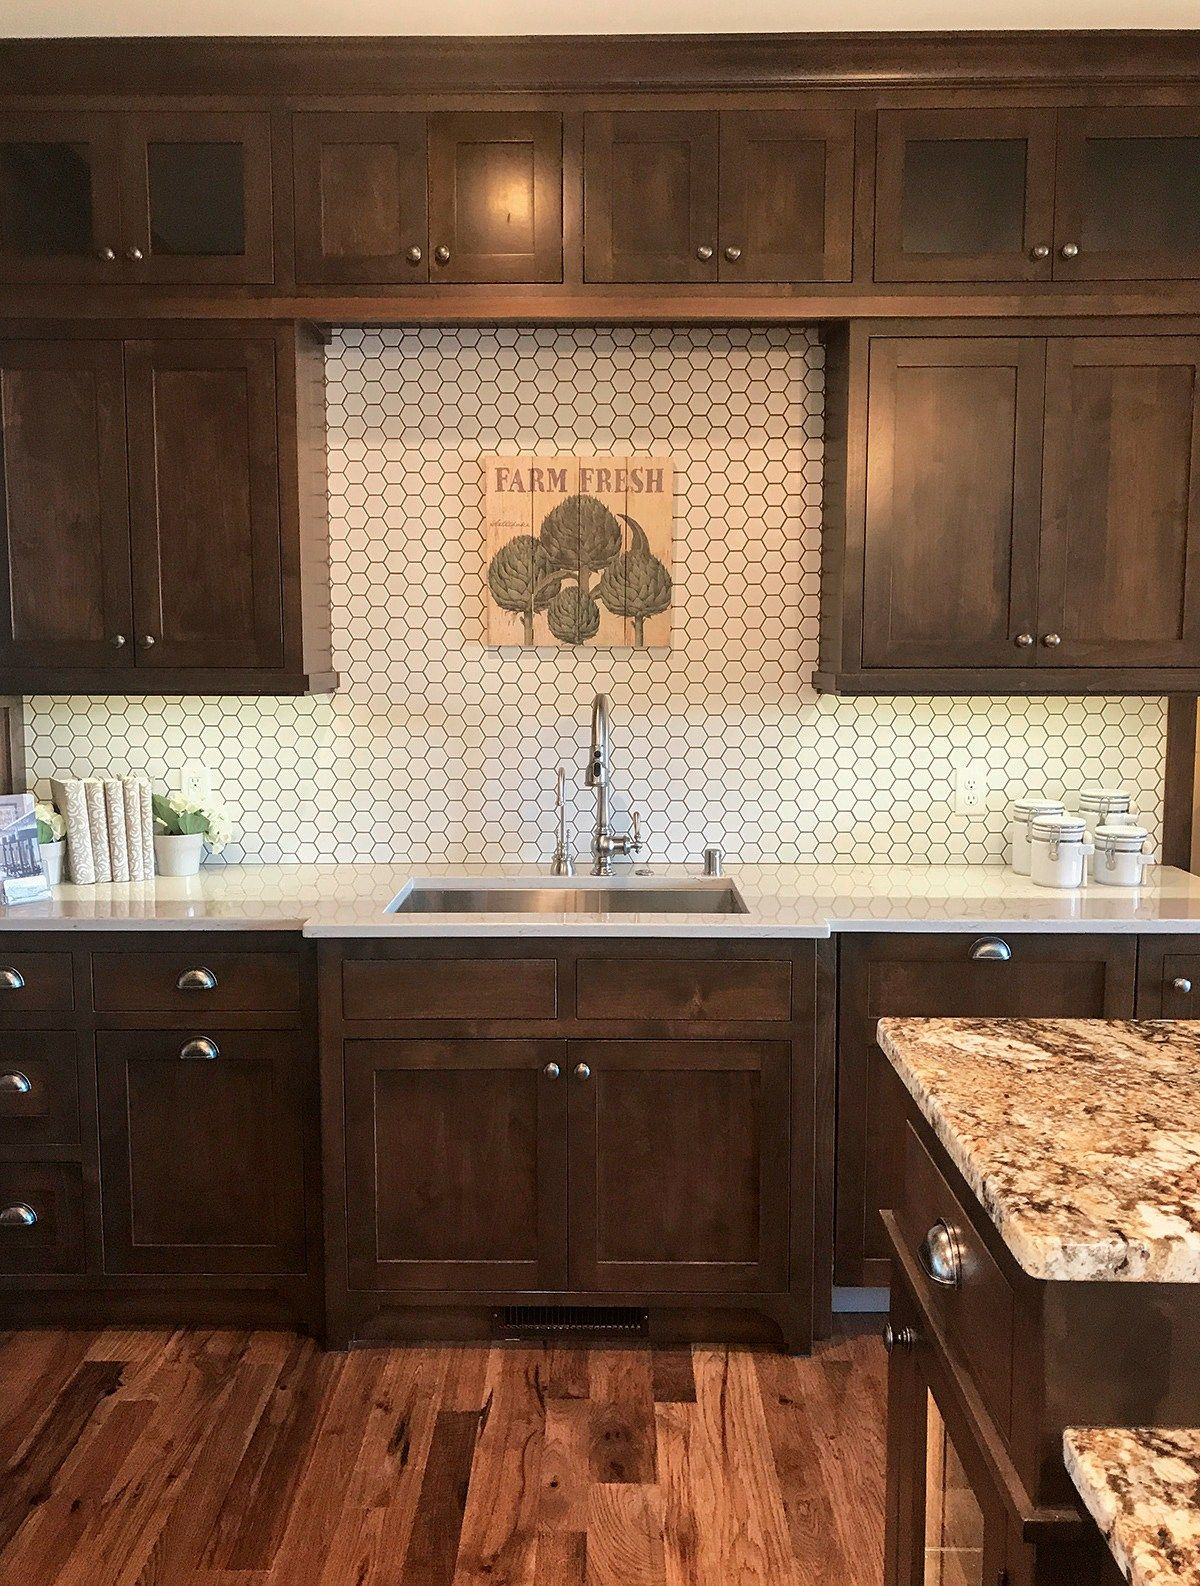 Backsplash trends great contrast in this kitchen warm brown cabinets rustic wood floors granite white hexagon tile with dark grout